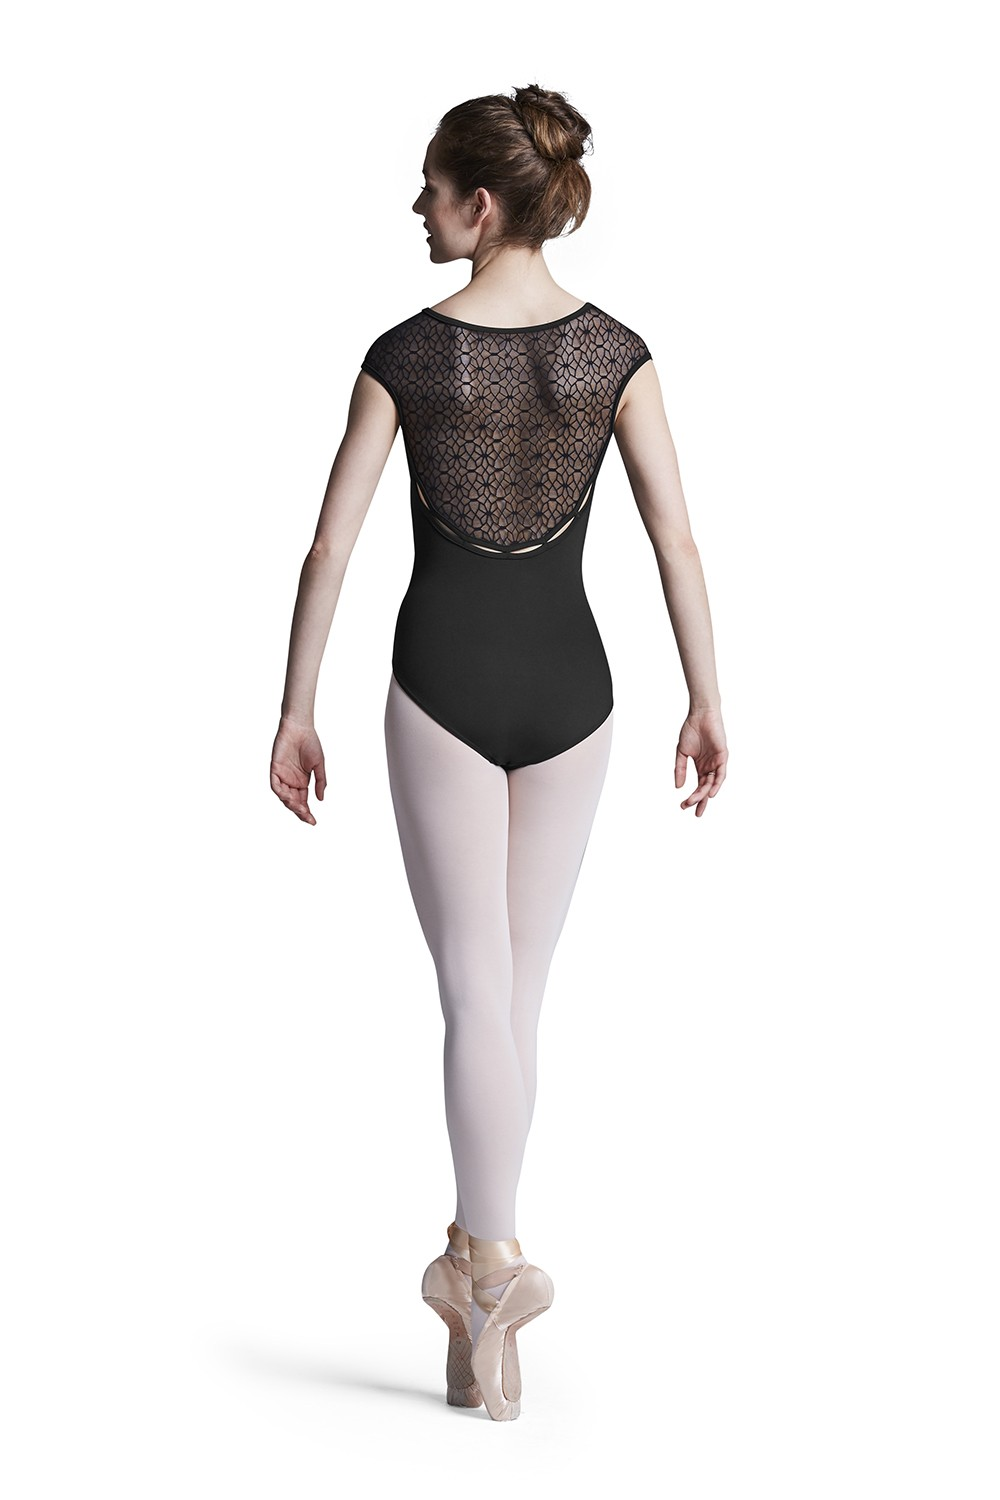 Edith Women's Dance Leotards